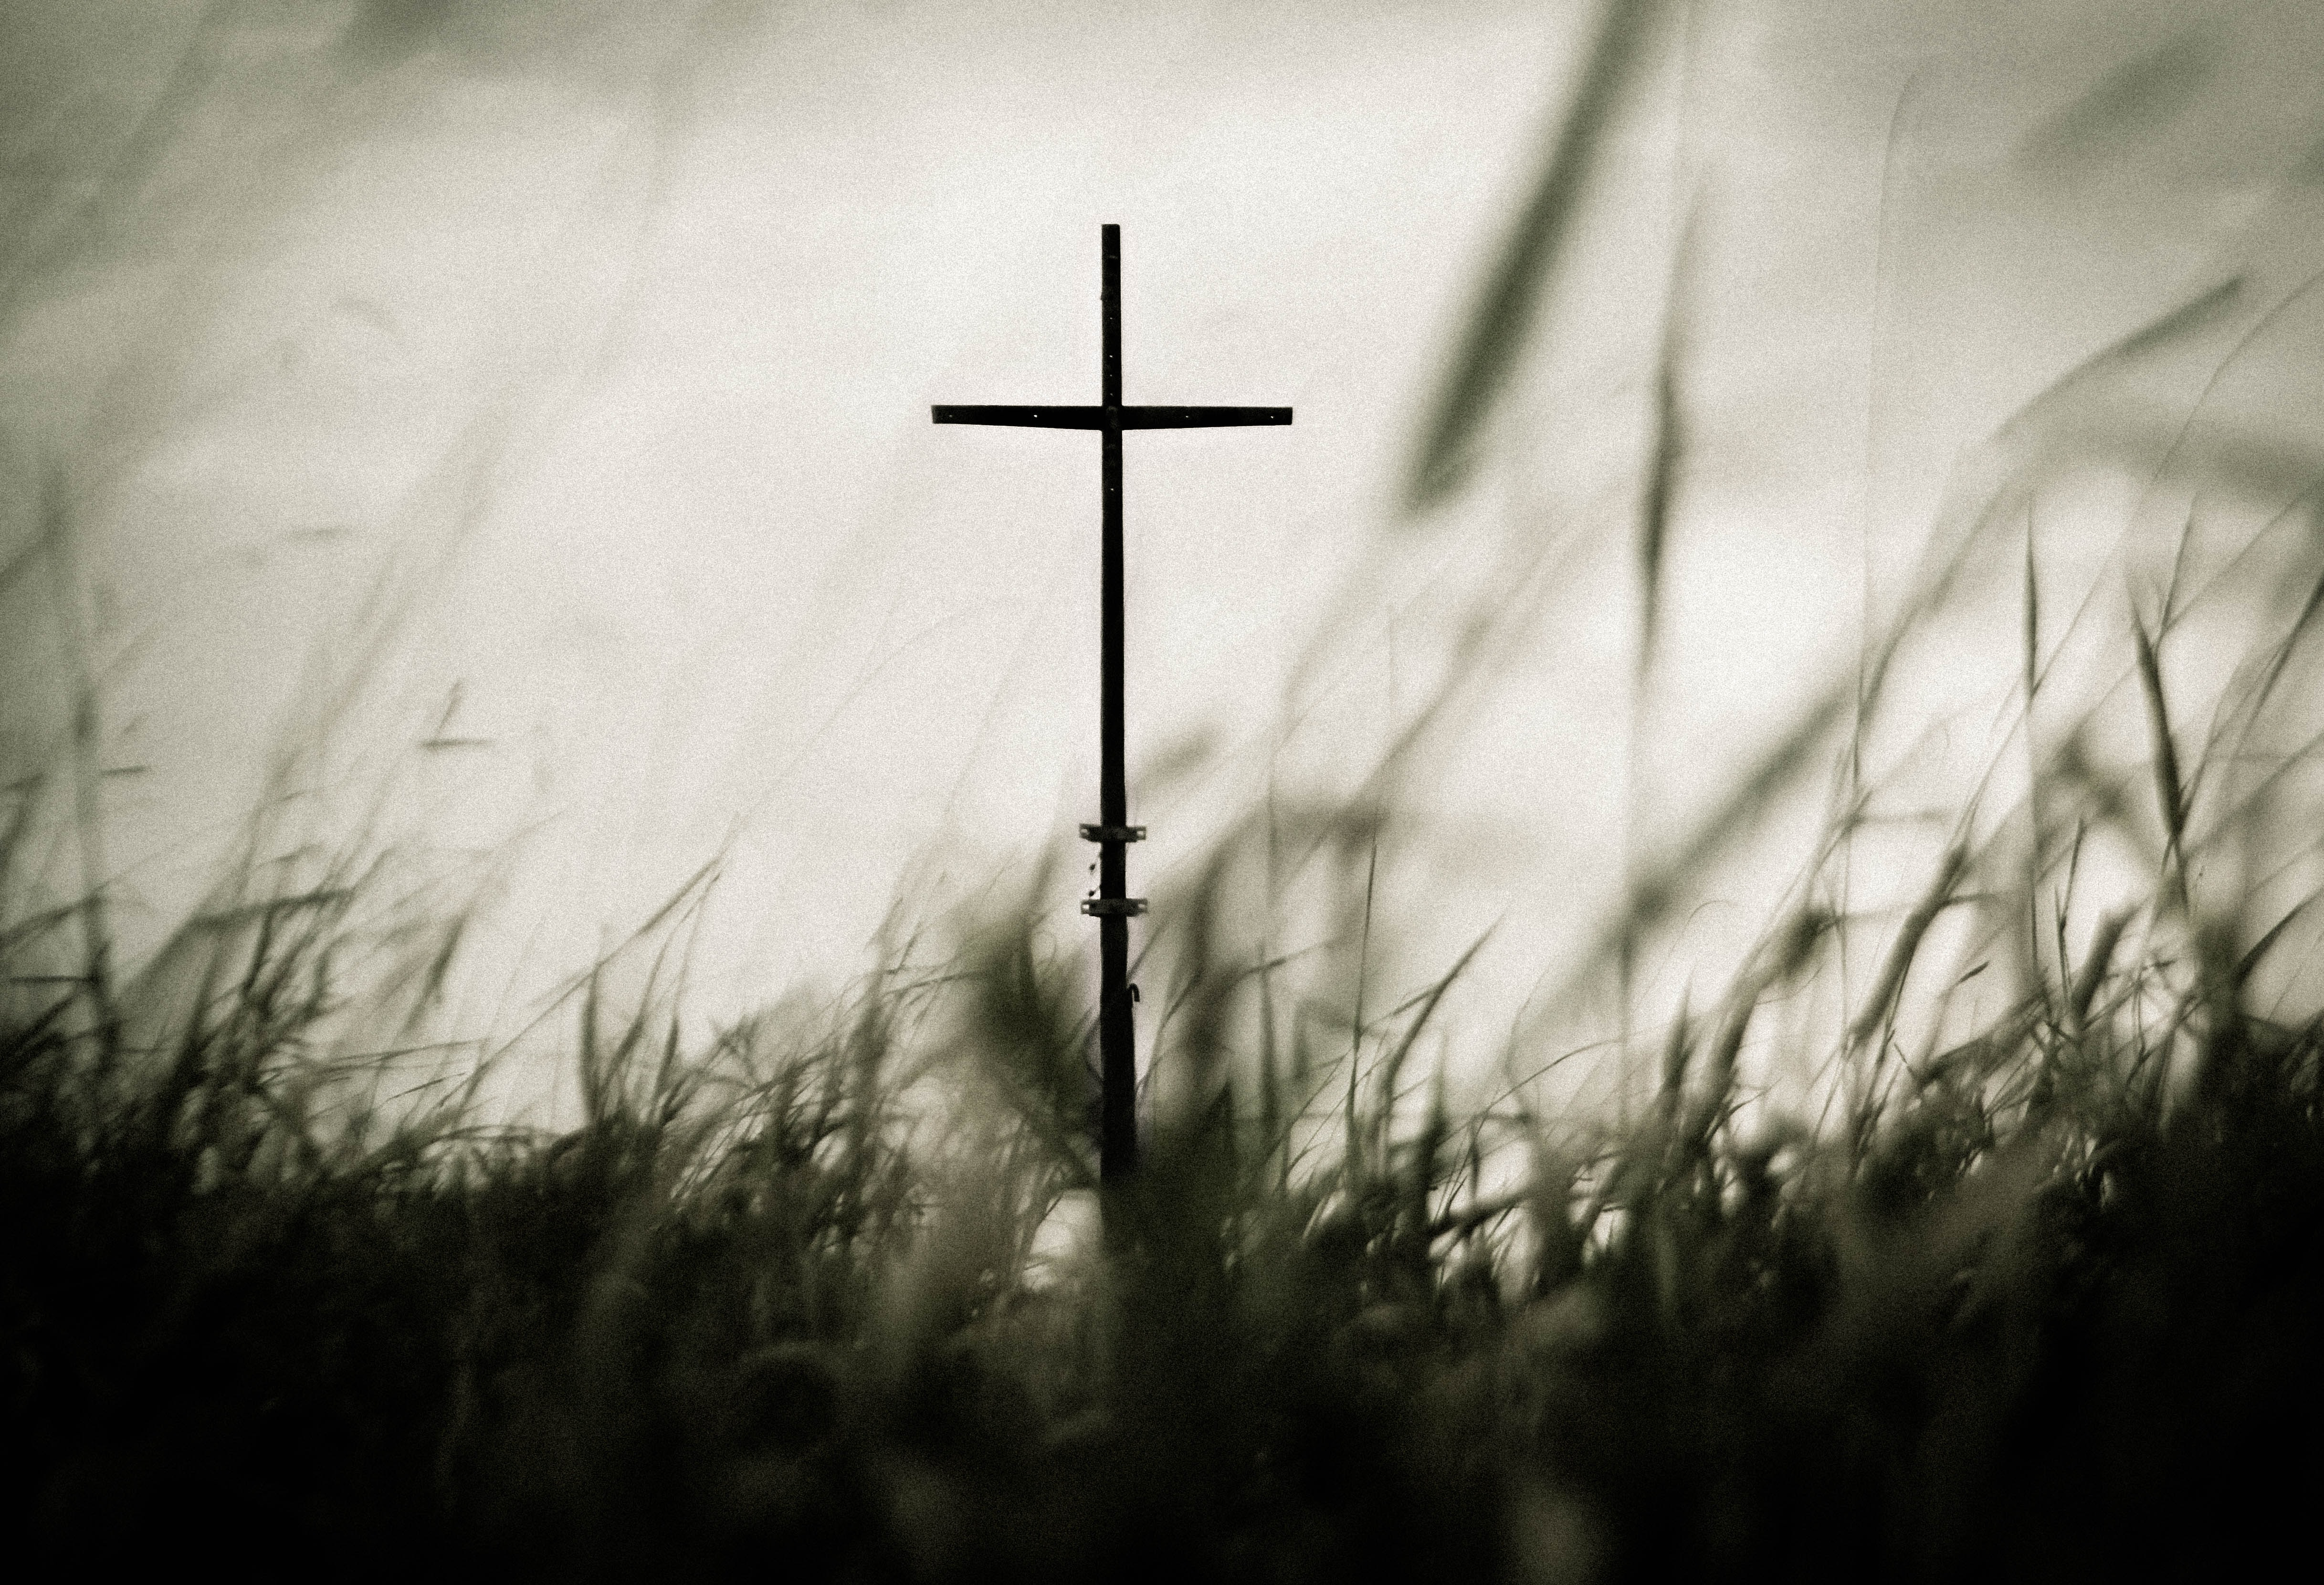 A stick shaped as a cross in a grass field.